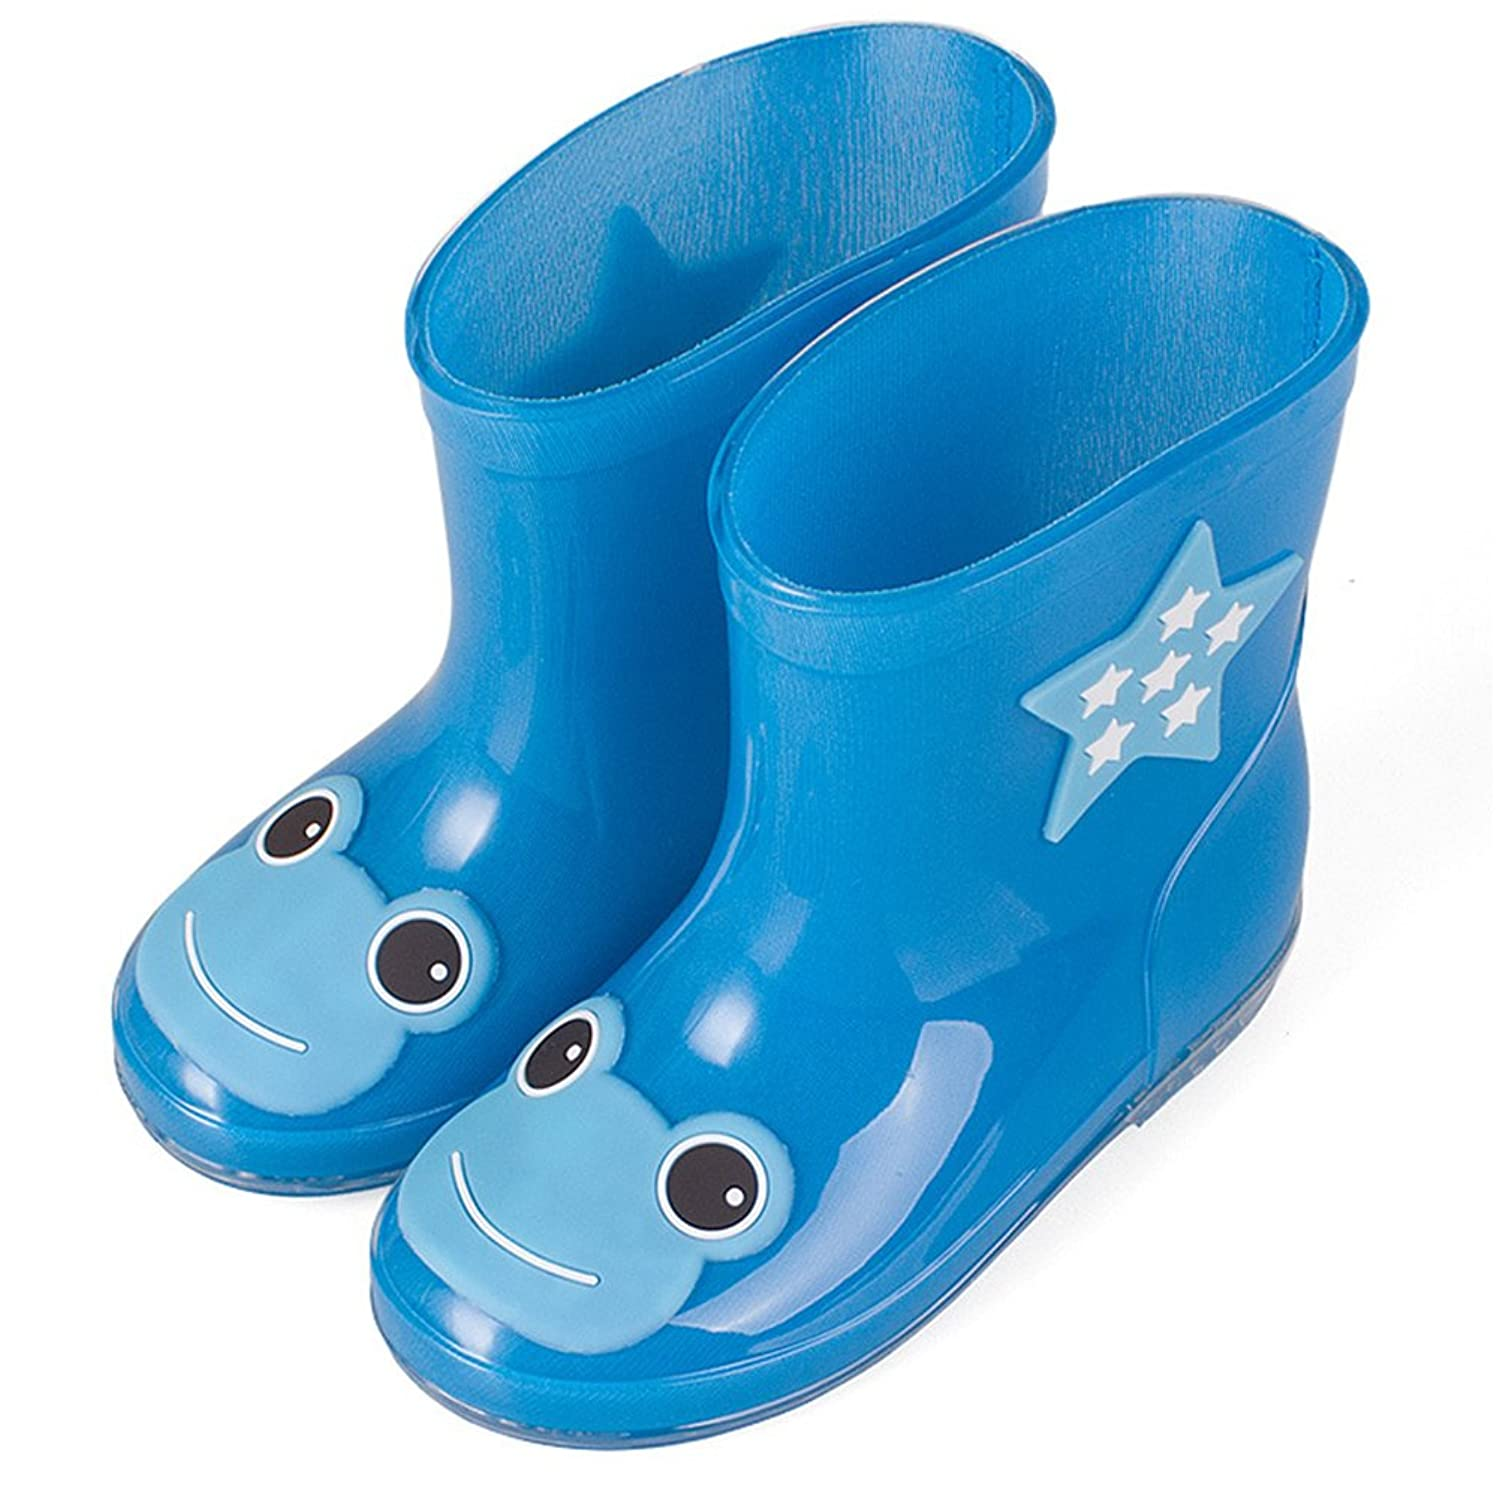 Zhuhaitf Light Weight Kids Children's Waterproof Rubber Rain Boots /Wellington  Boots: Amazon.co.uk: Shoes & Bags